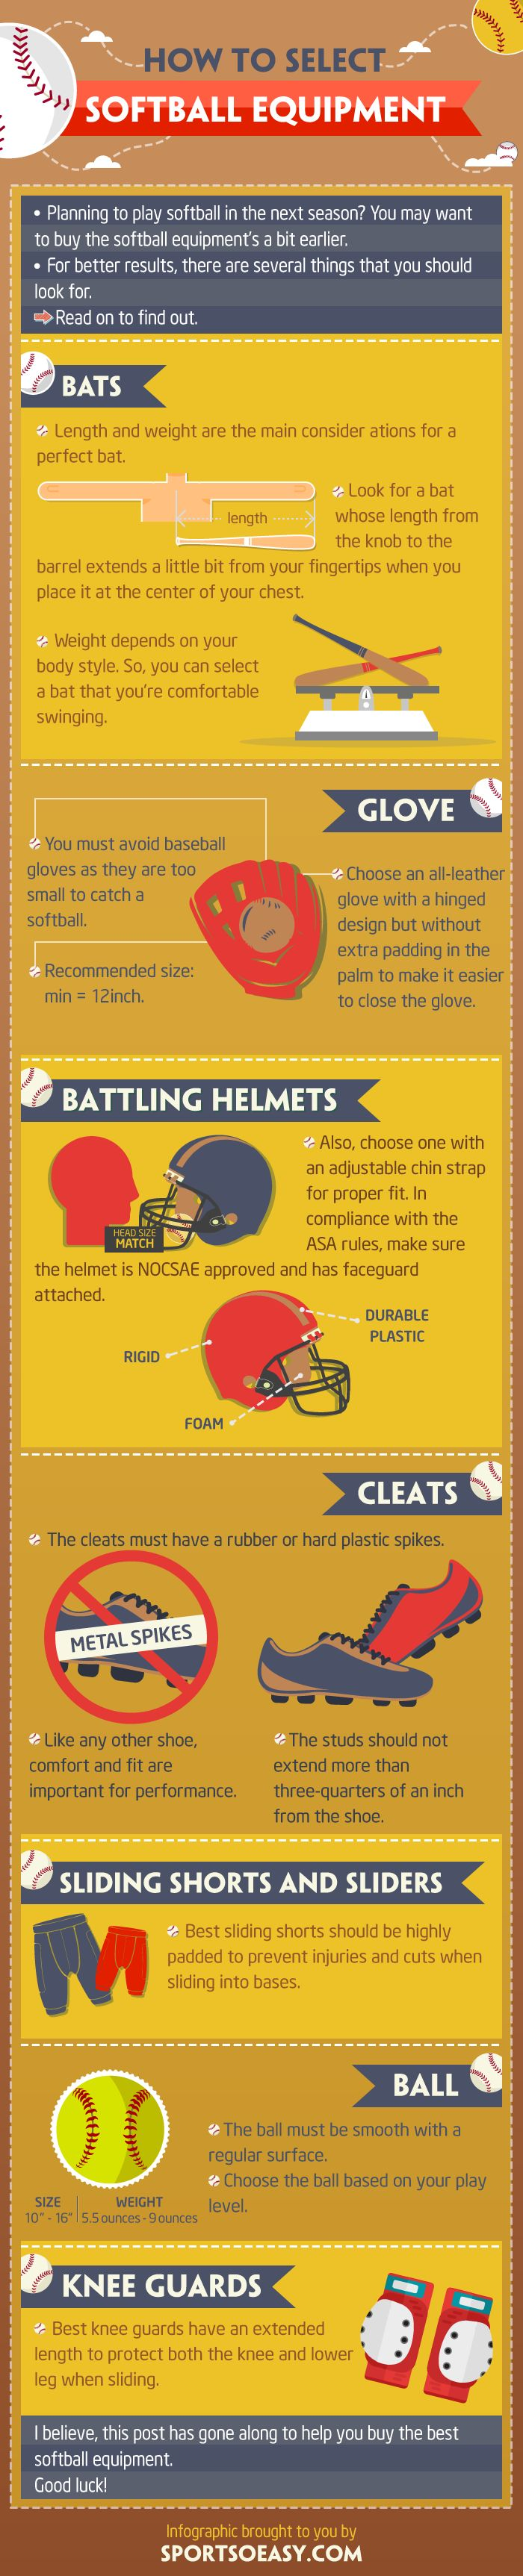 How To Select Softball Equipment infographic